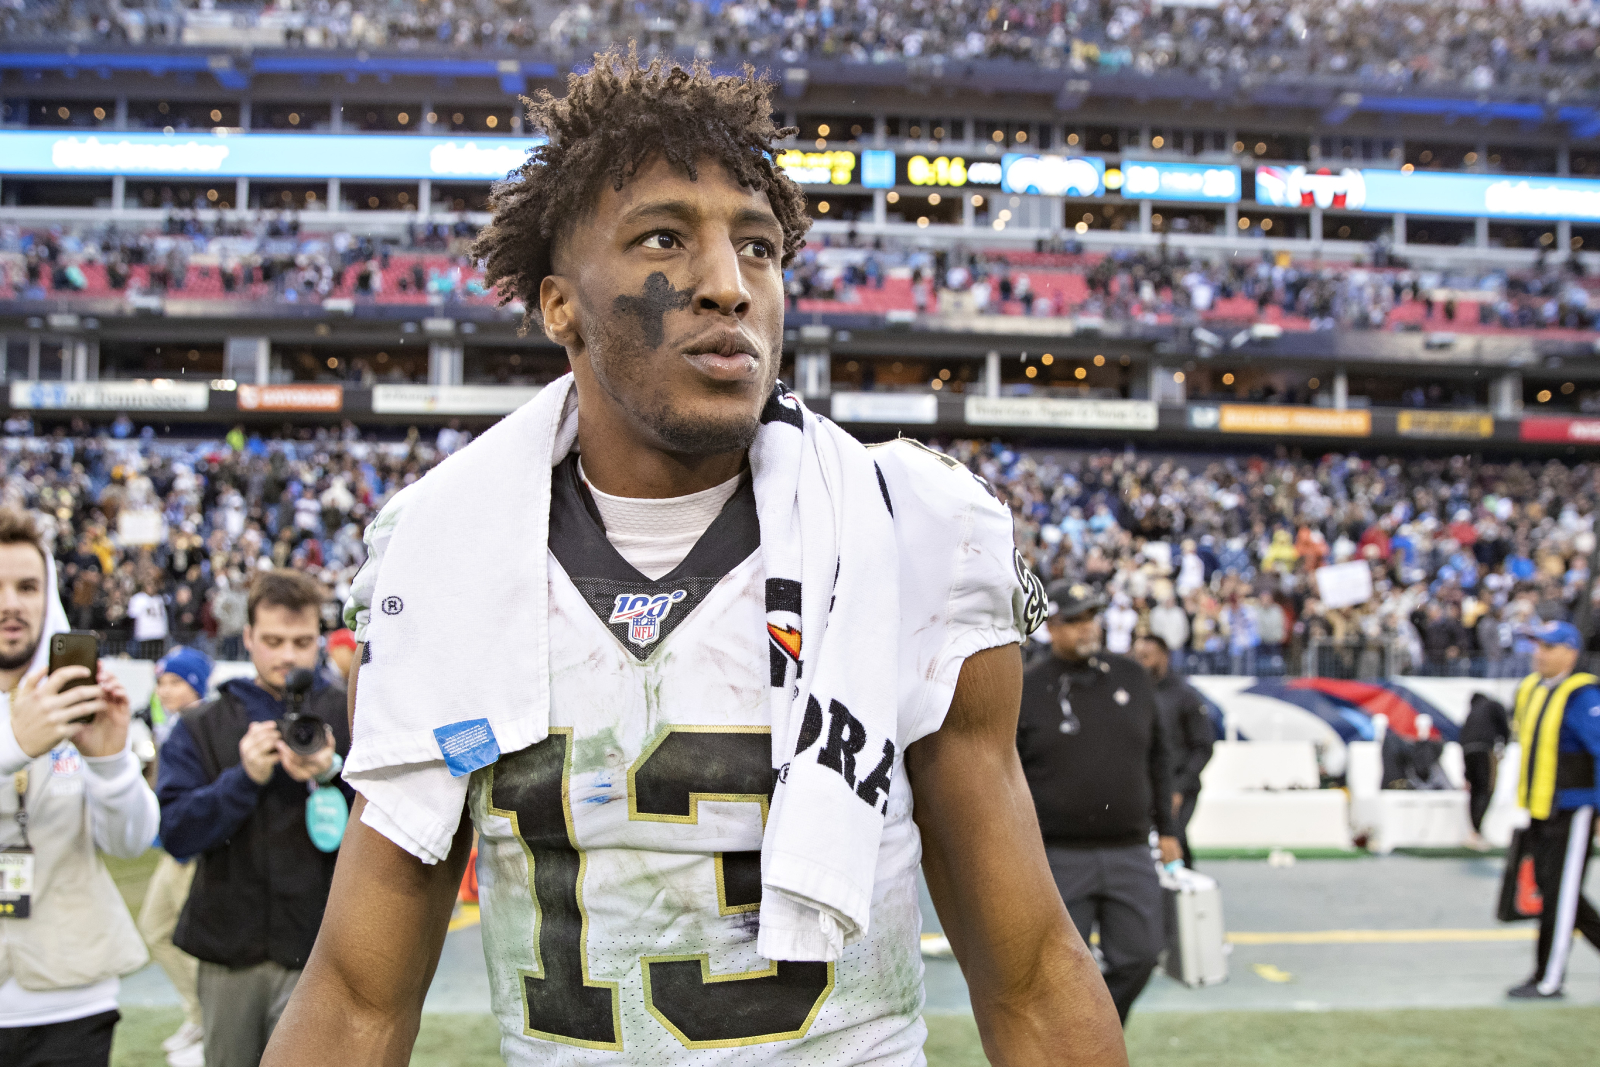 Michael Thomas just sent a message to his team, the New Orleans Saints. They should absolutely listen to their star receiver too.